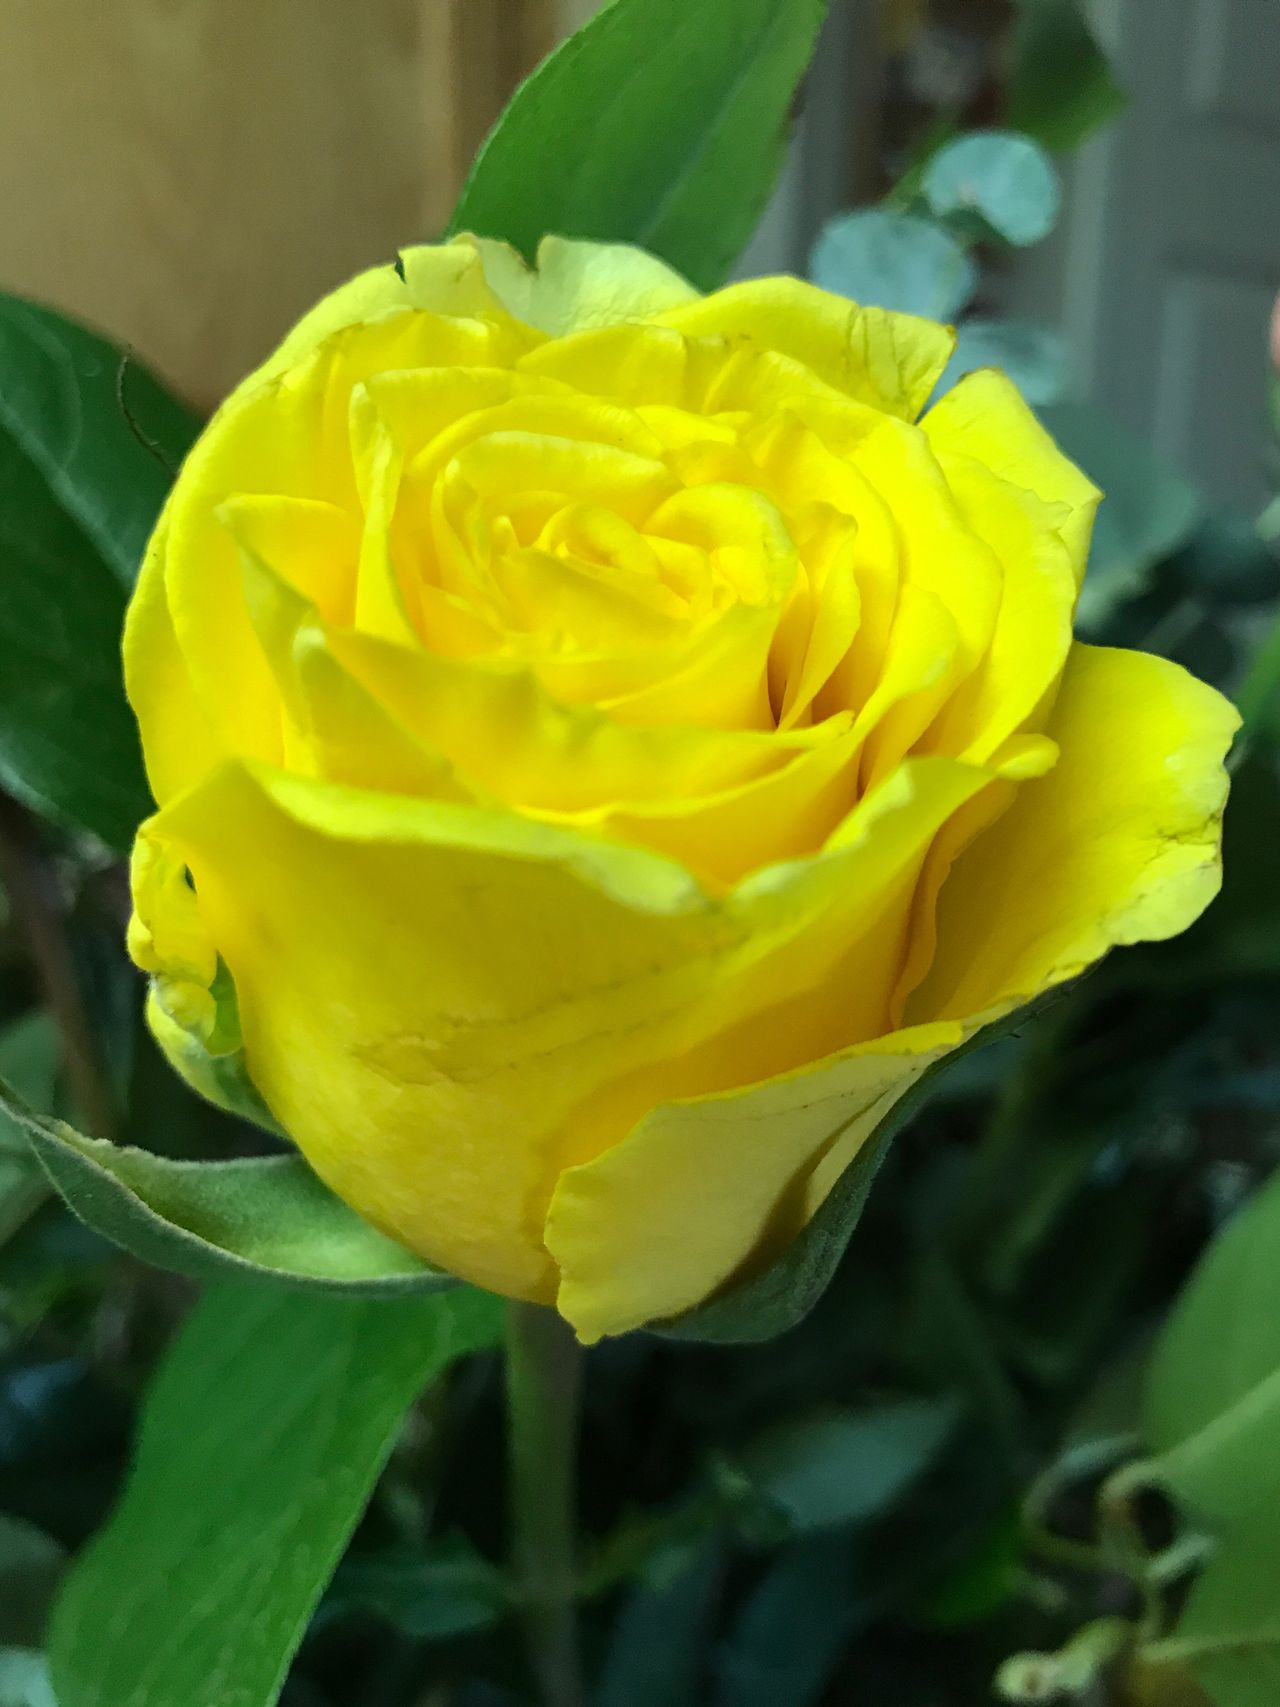 Flower Petal Fragility Yellow Flower Head Nature Freshness Rose - Flower Beauty In Nature Close-up Growth Plant No People Springtime Leaf Blooming Rose Bud Yellow Rose